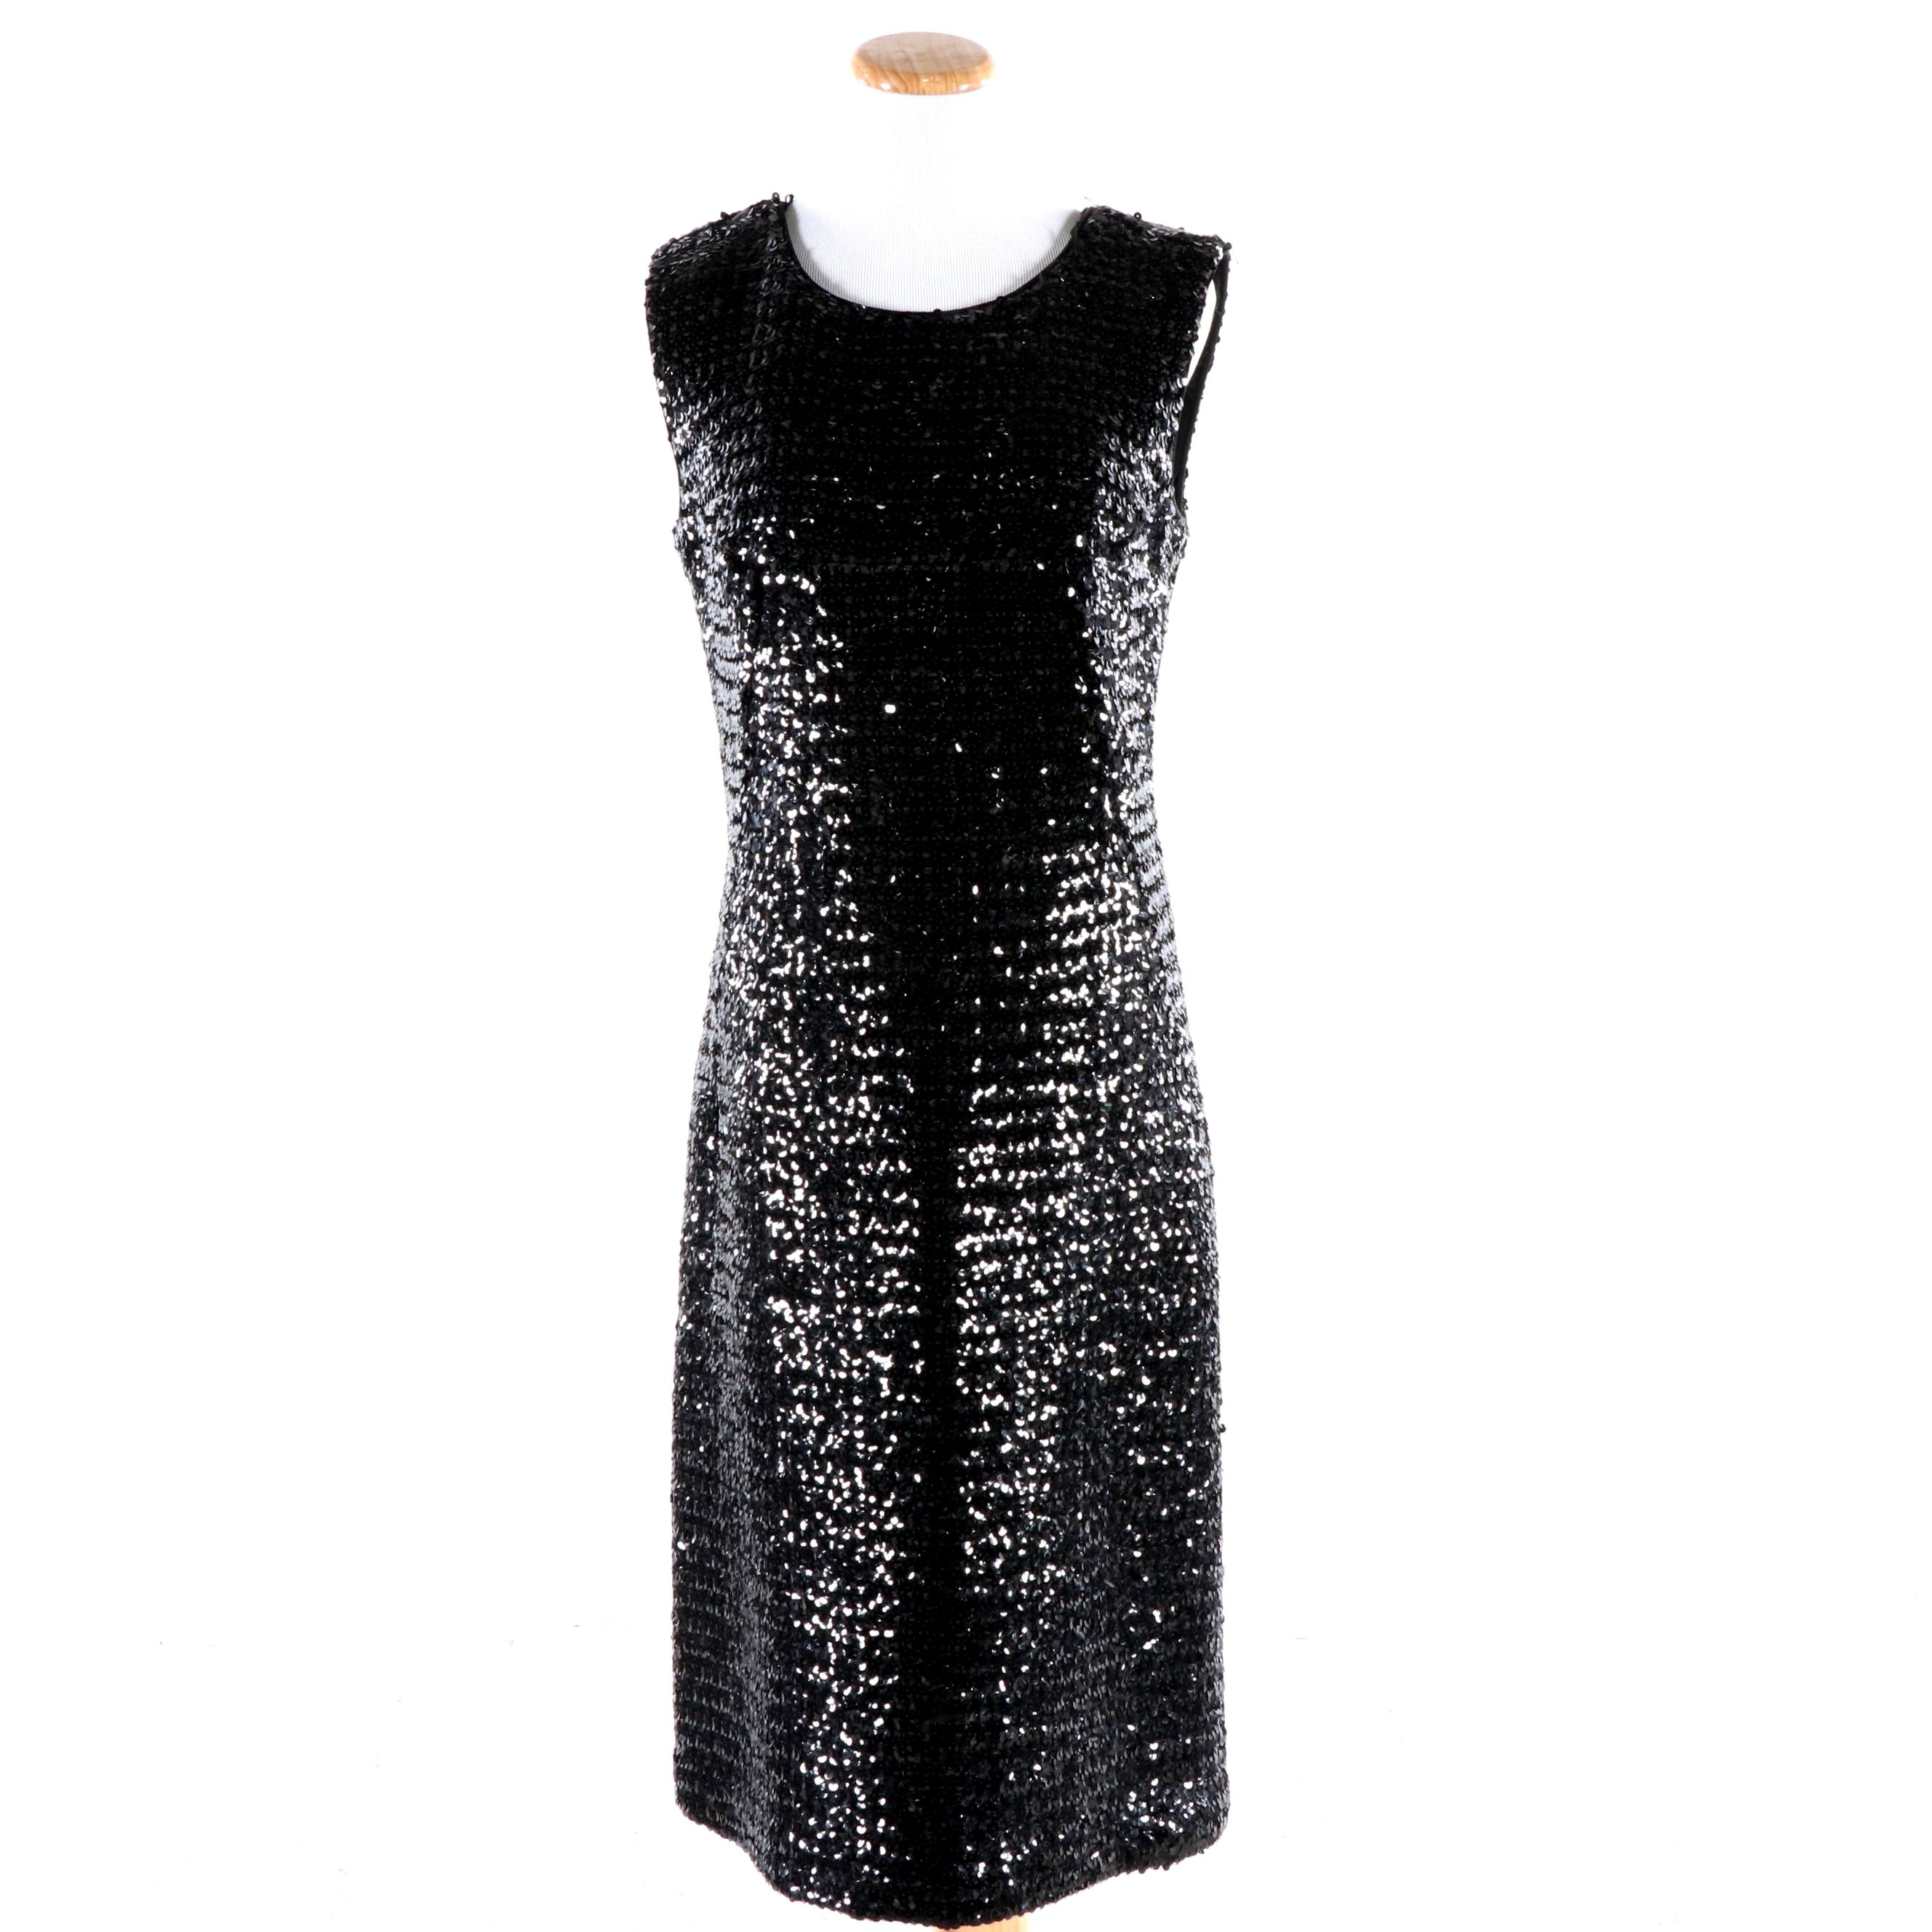 Suzy Perette Designed By John Derro Black Sequined Sheath Dress, Vintage